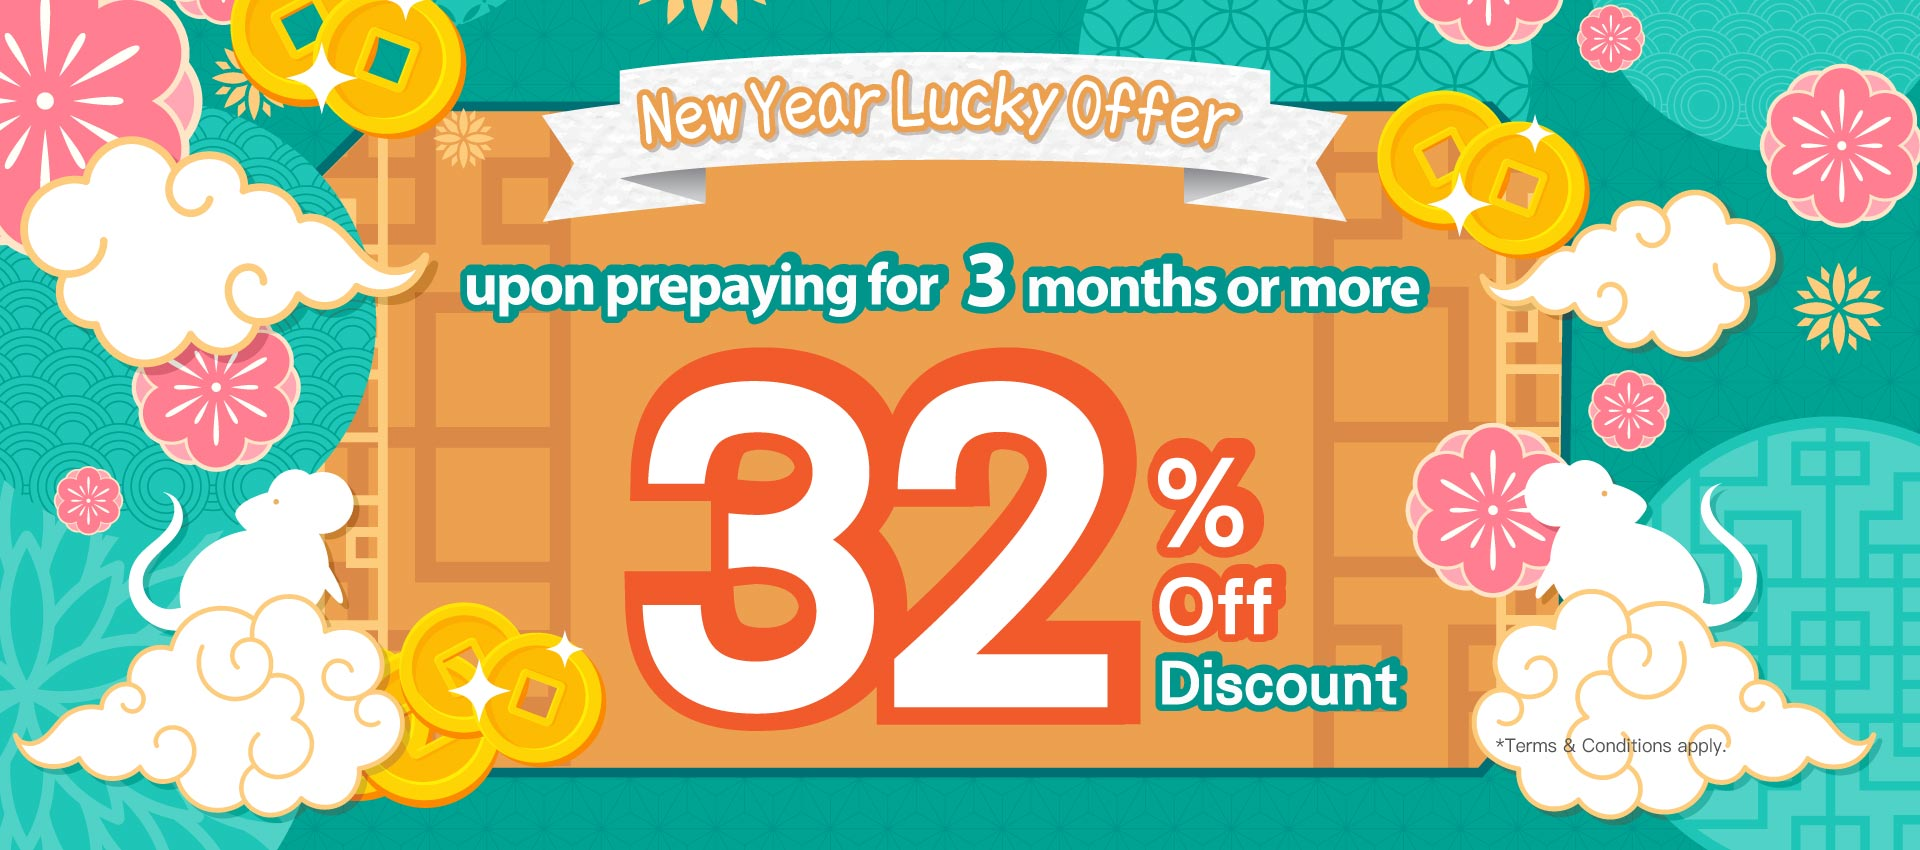 enjoy a 32% off discount at any branch upon prepaying for 3 months or more!